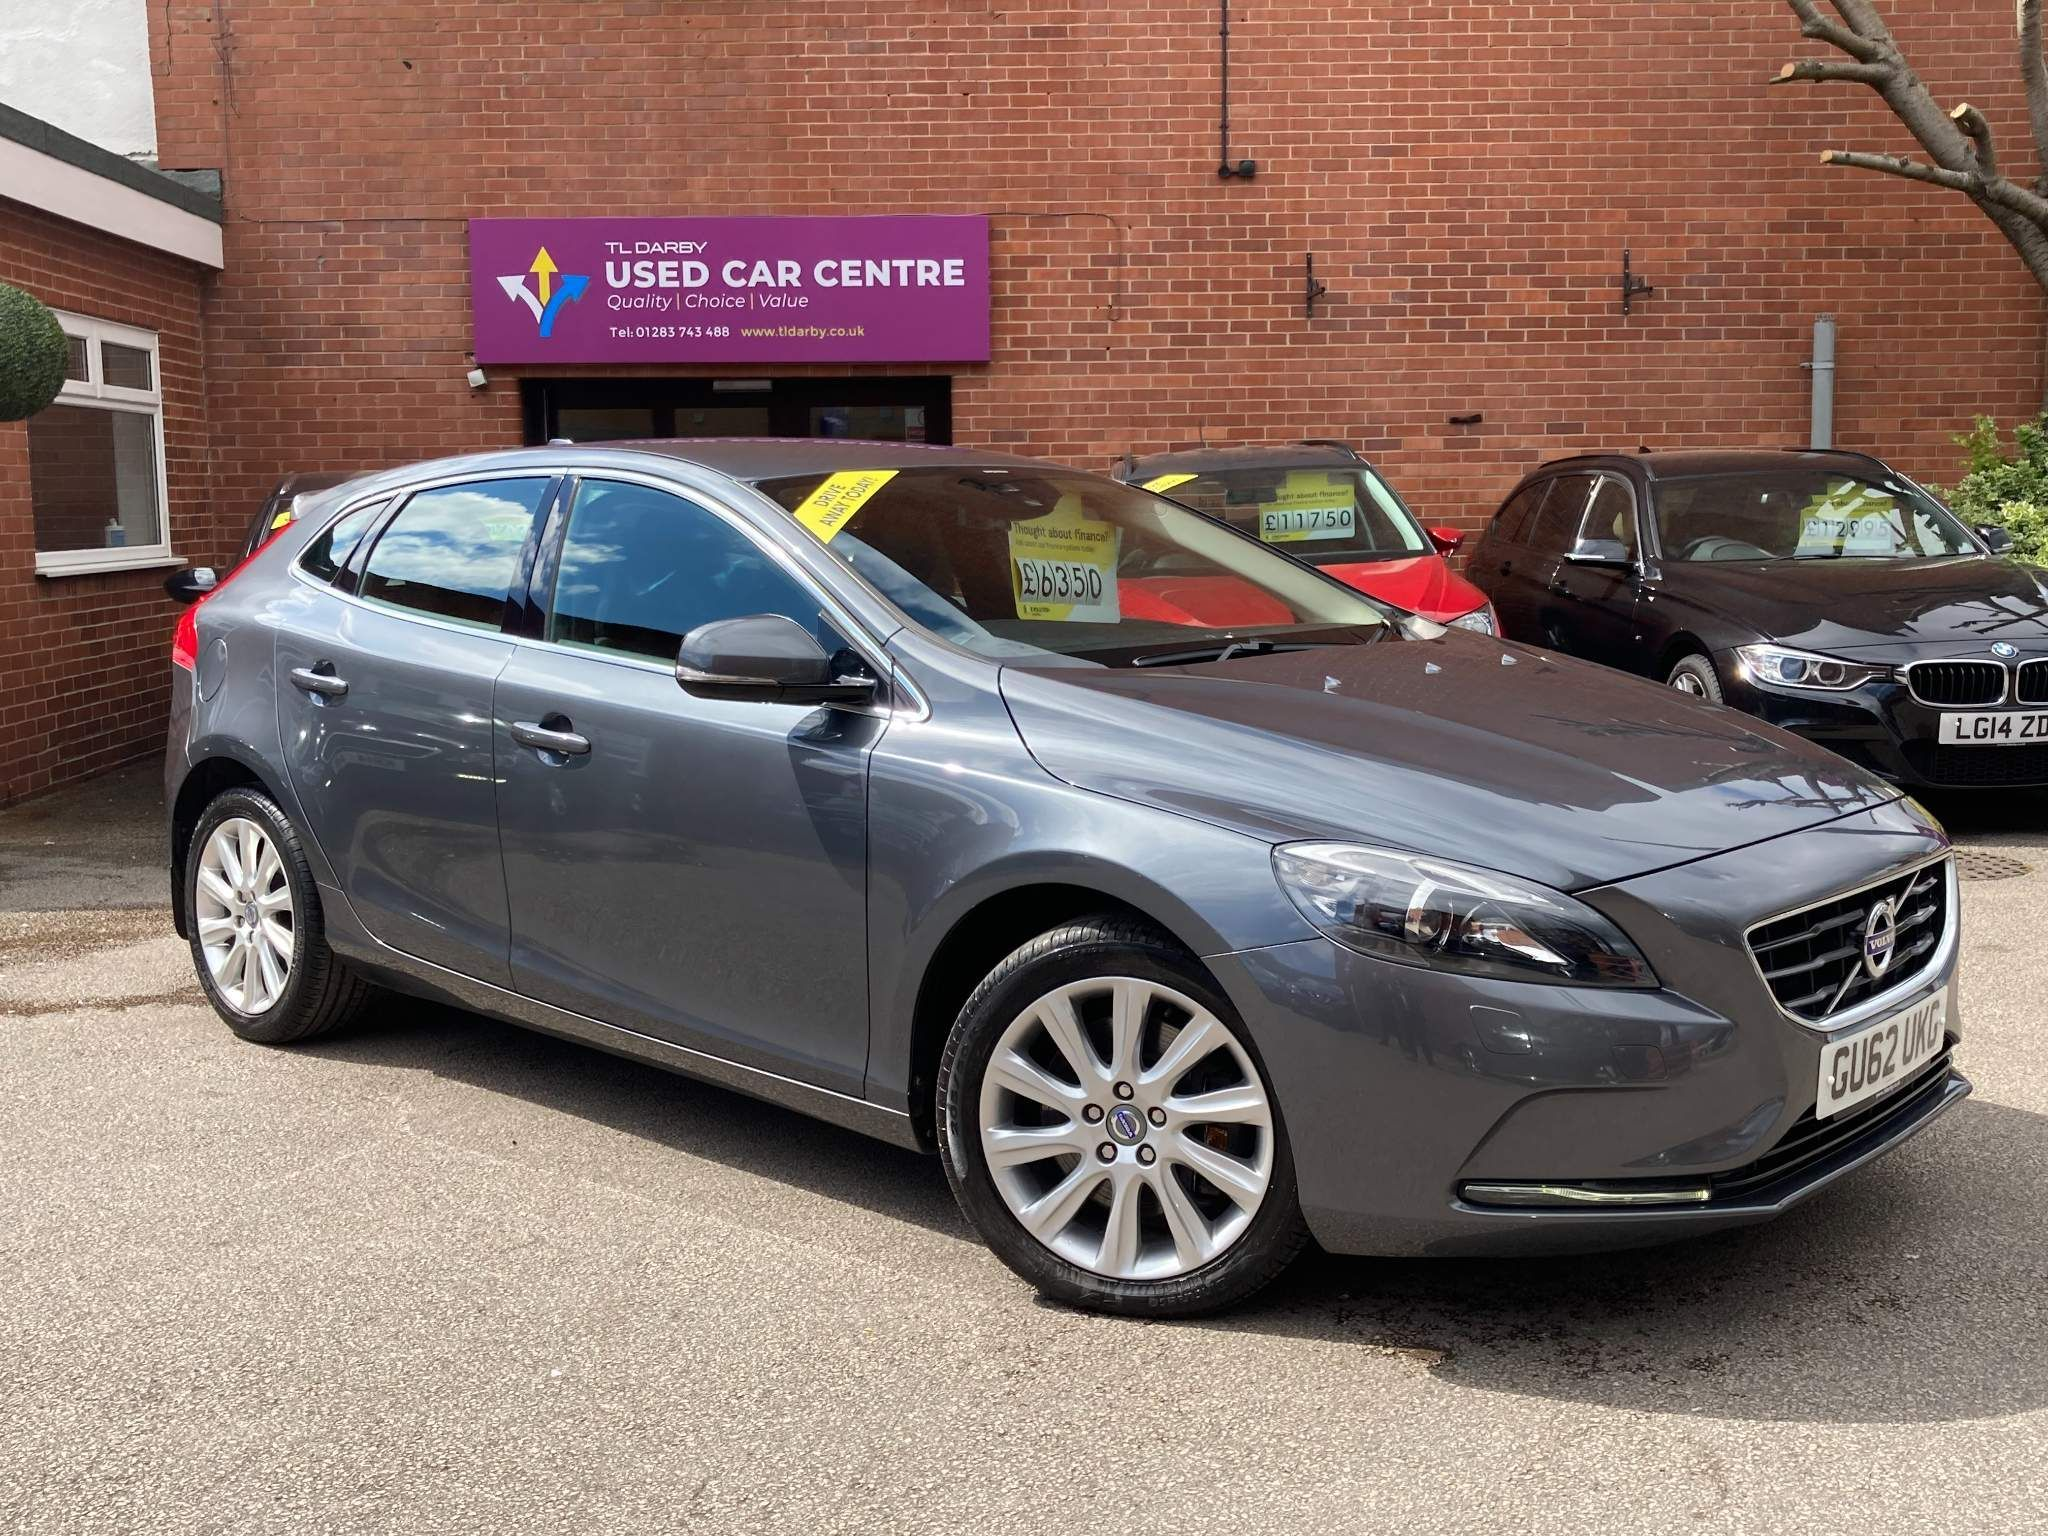 Volvo V40 2.0 D3 SE Lux Geartronic 5dr